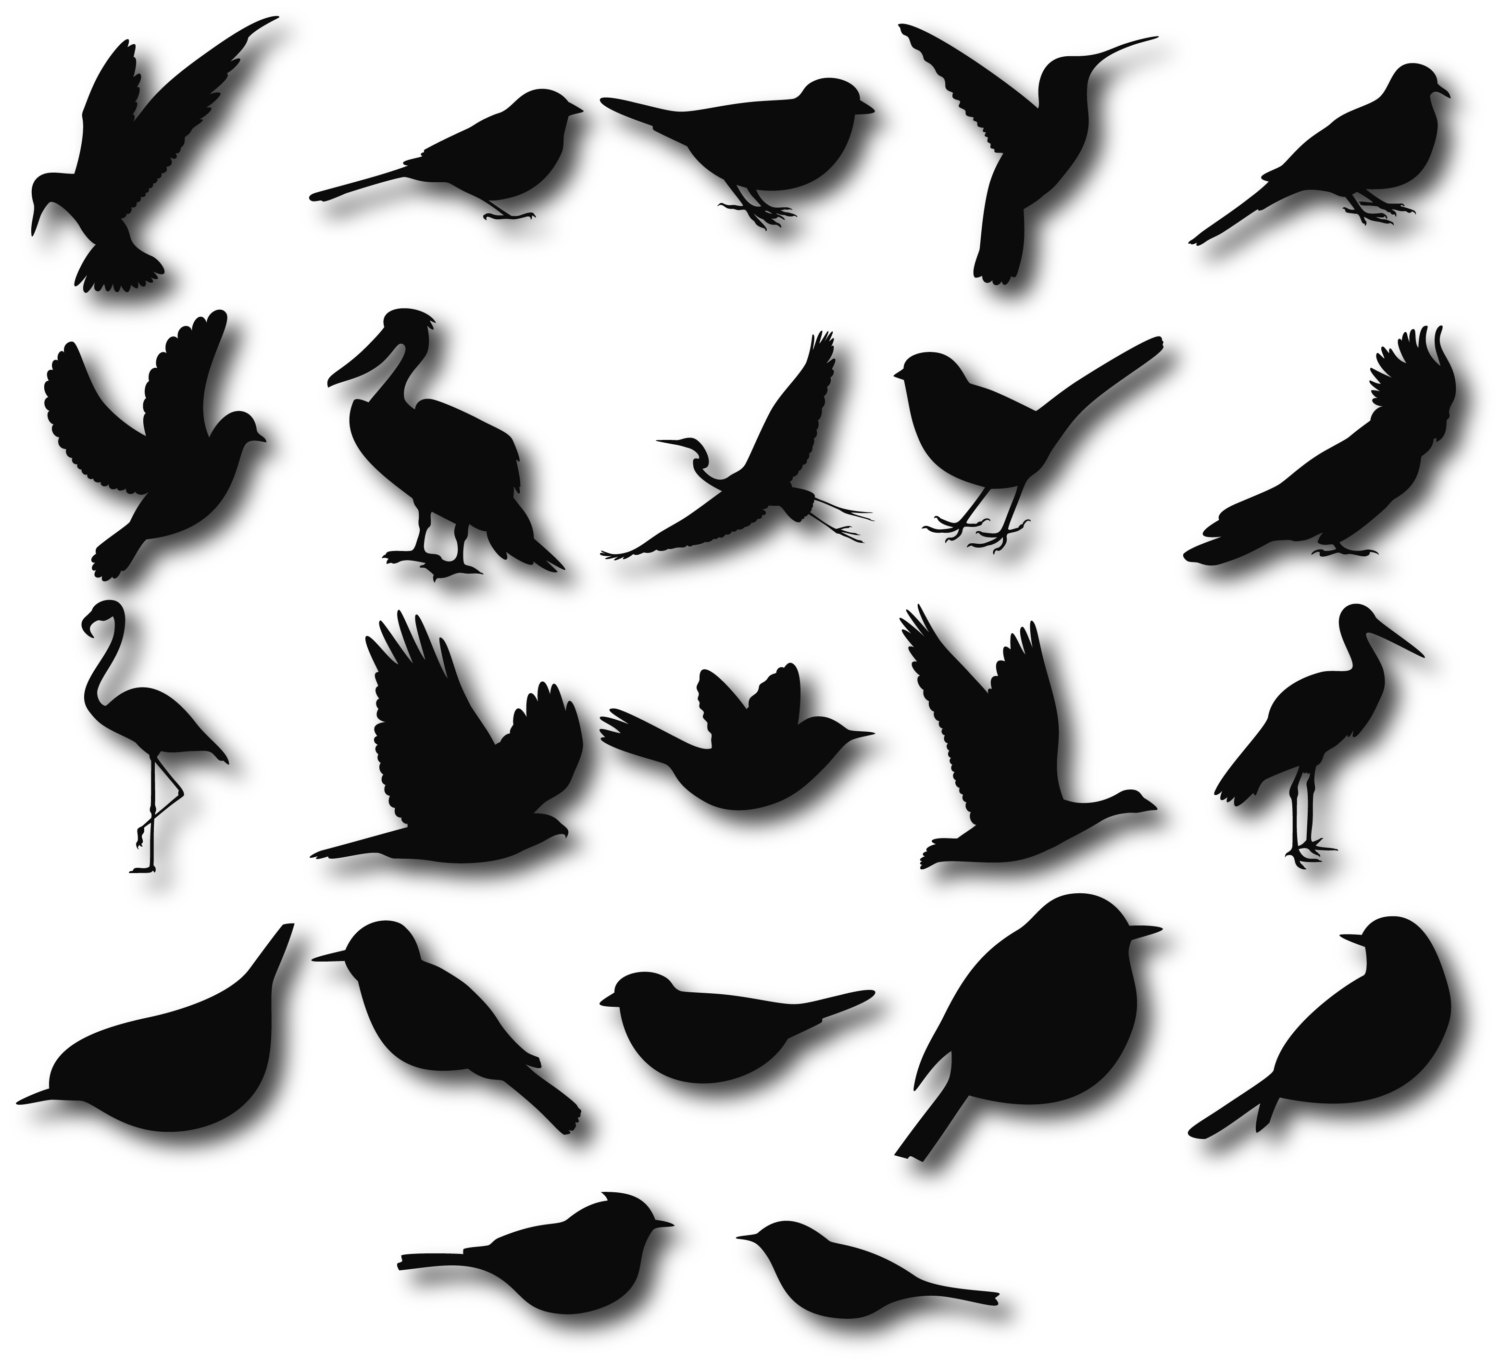 1500x1363 Birds Silhouettes, Birds Clipart, Birds Svg, Bird Silhouette Clip